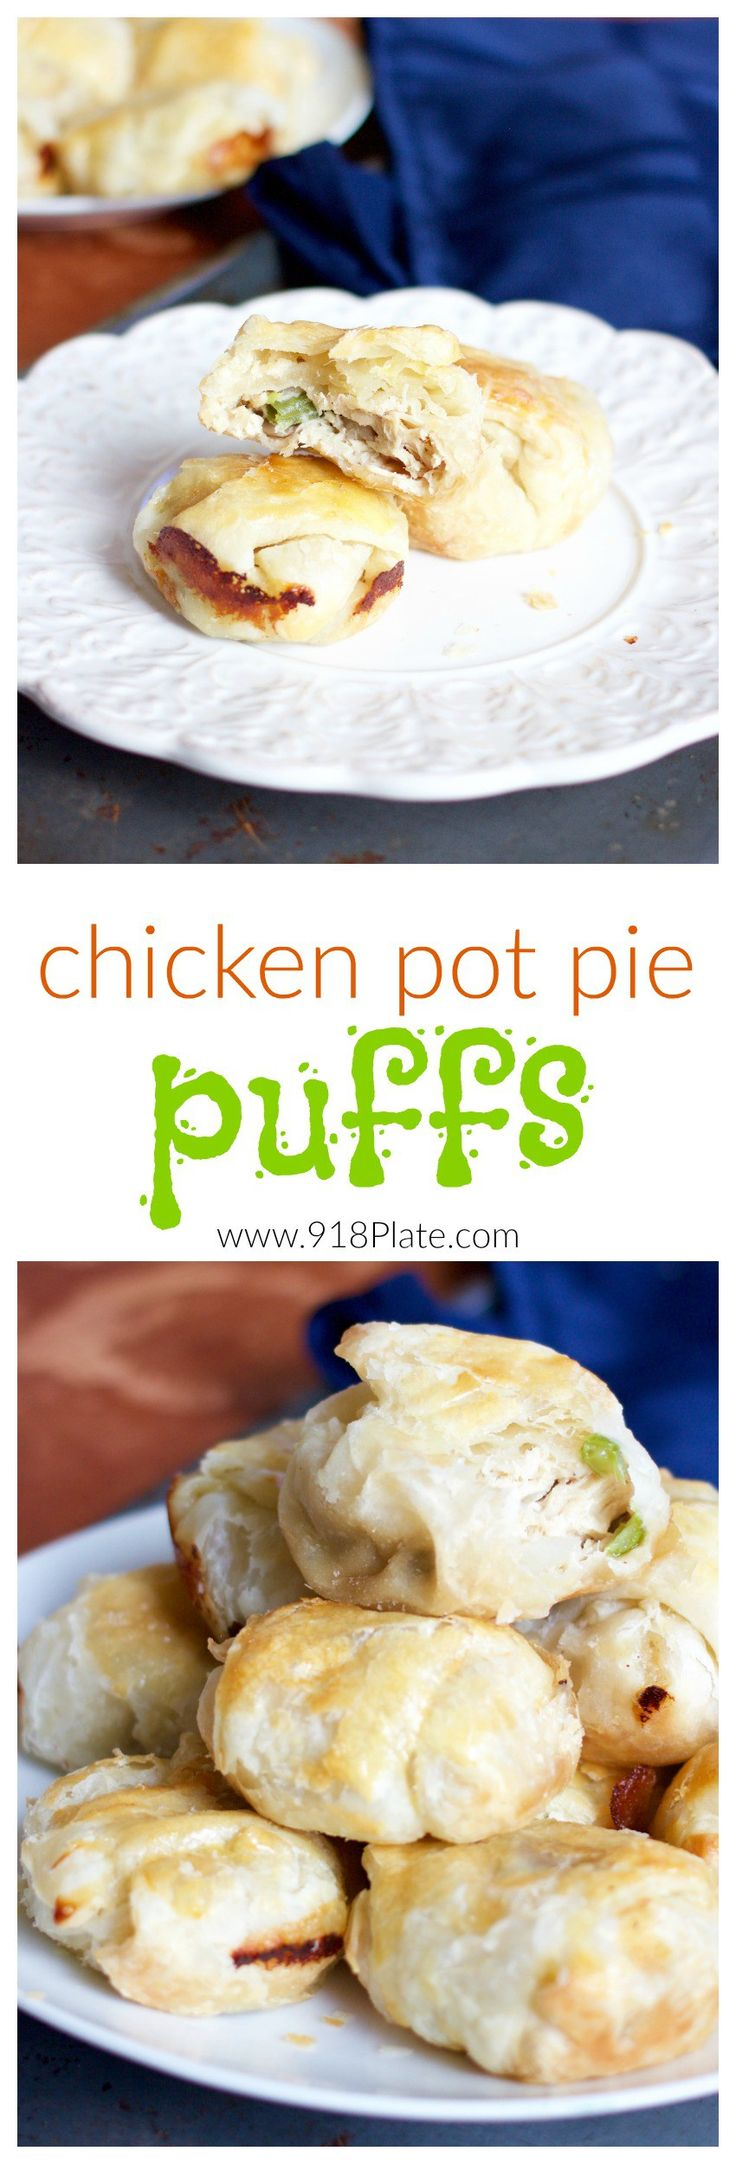 These chicken pot pie puffs are a fun way to get your veggies - they're always better when wrapped in a flaky pastry!